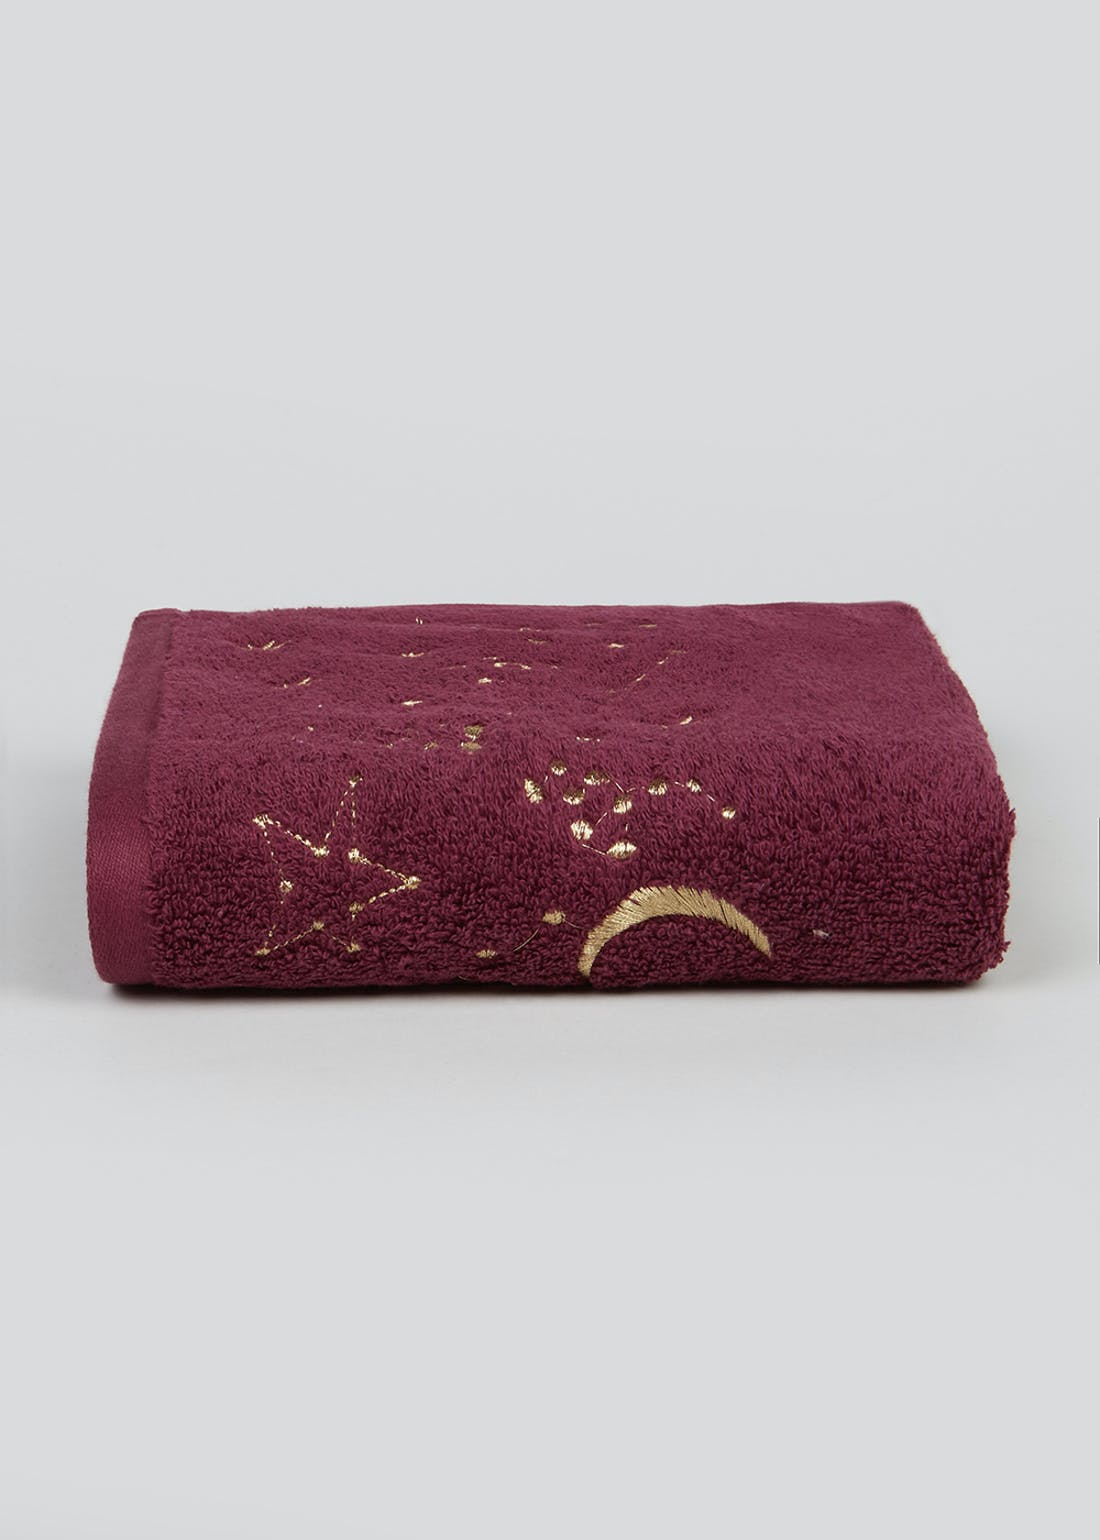 Embroidered Star Hand Towel (90cm x 50cm)